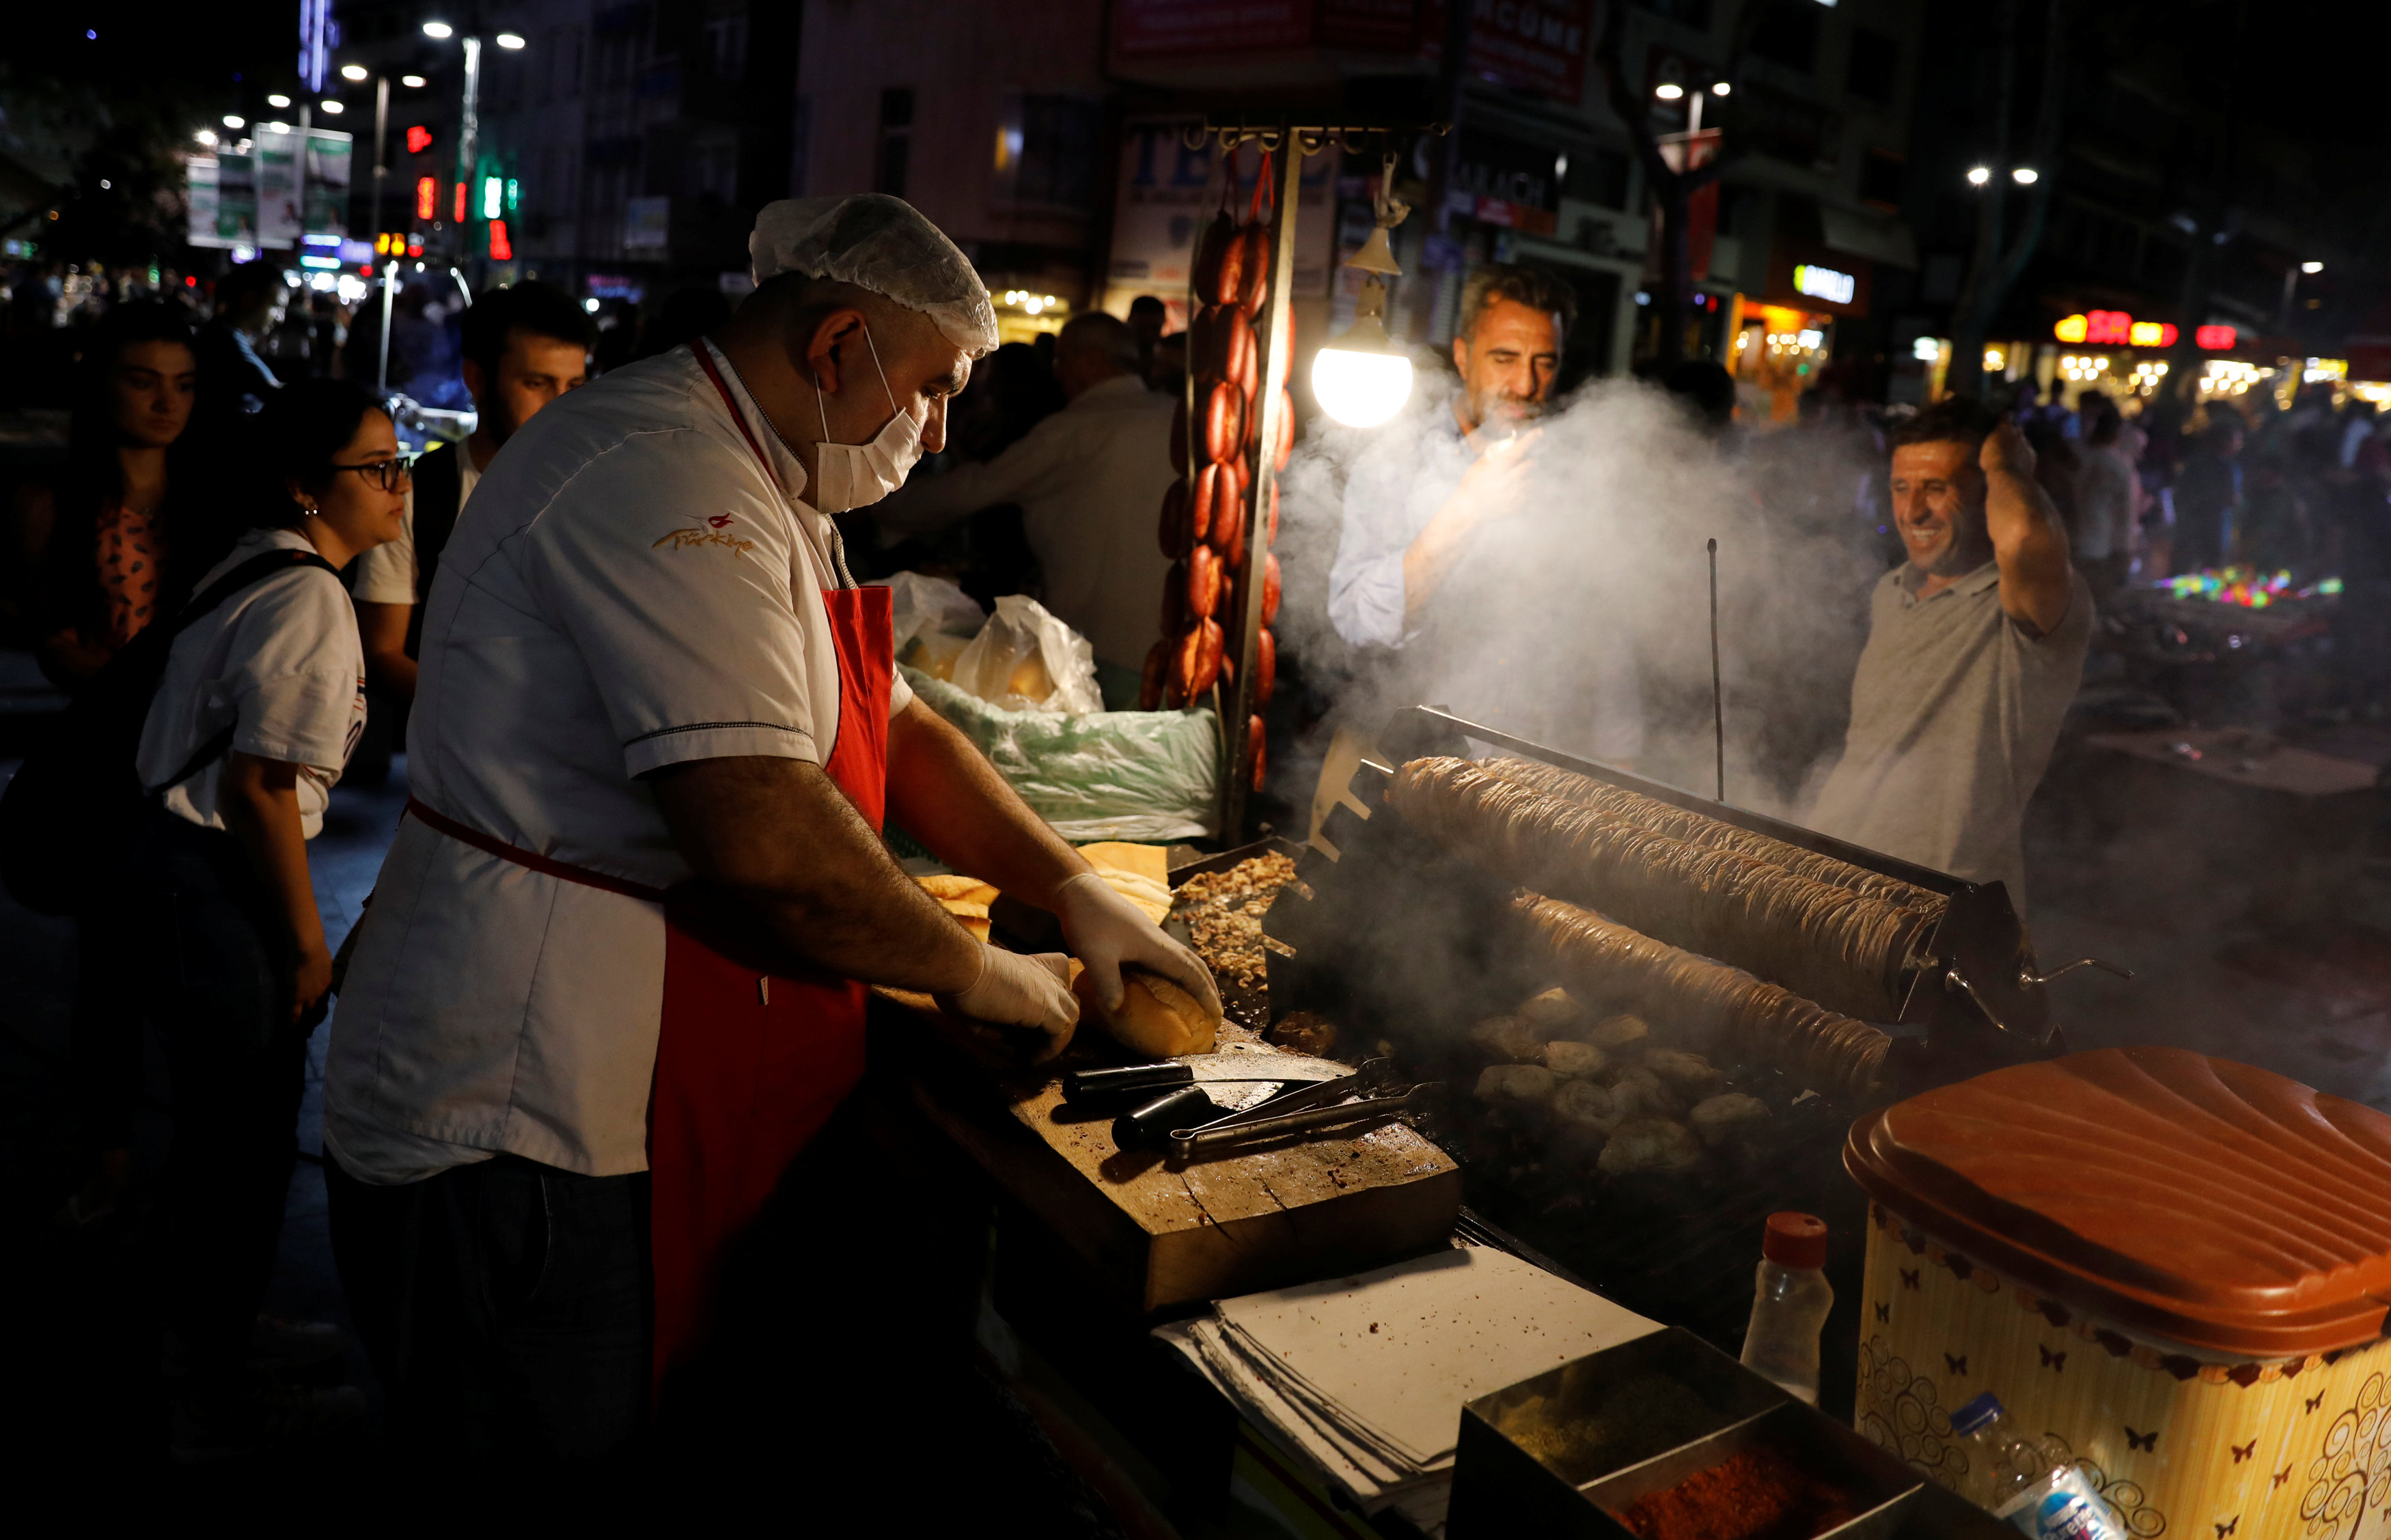 A street vendor sells food on a main street in central Ankara, Turkey August 17, 2018. REUTERS/Umit Bektas